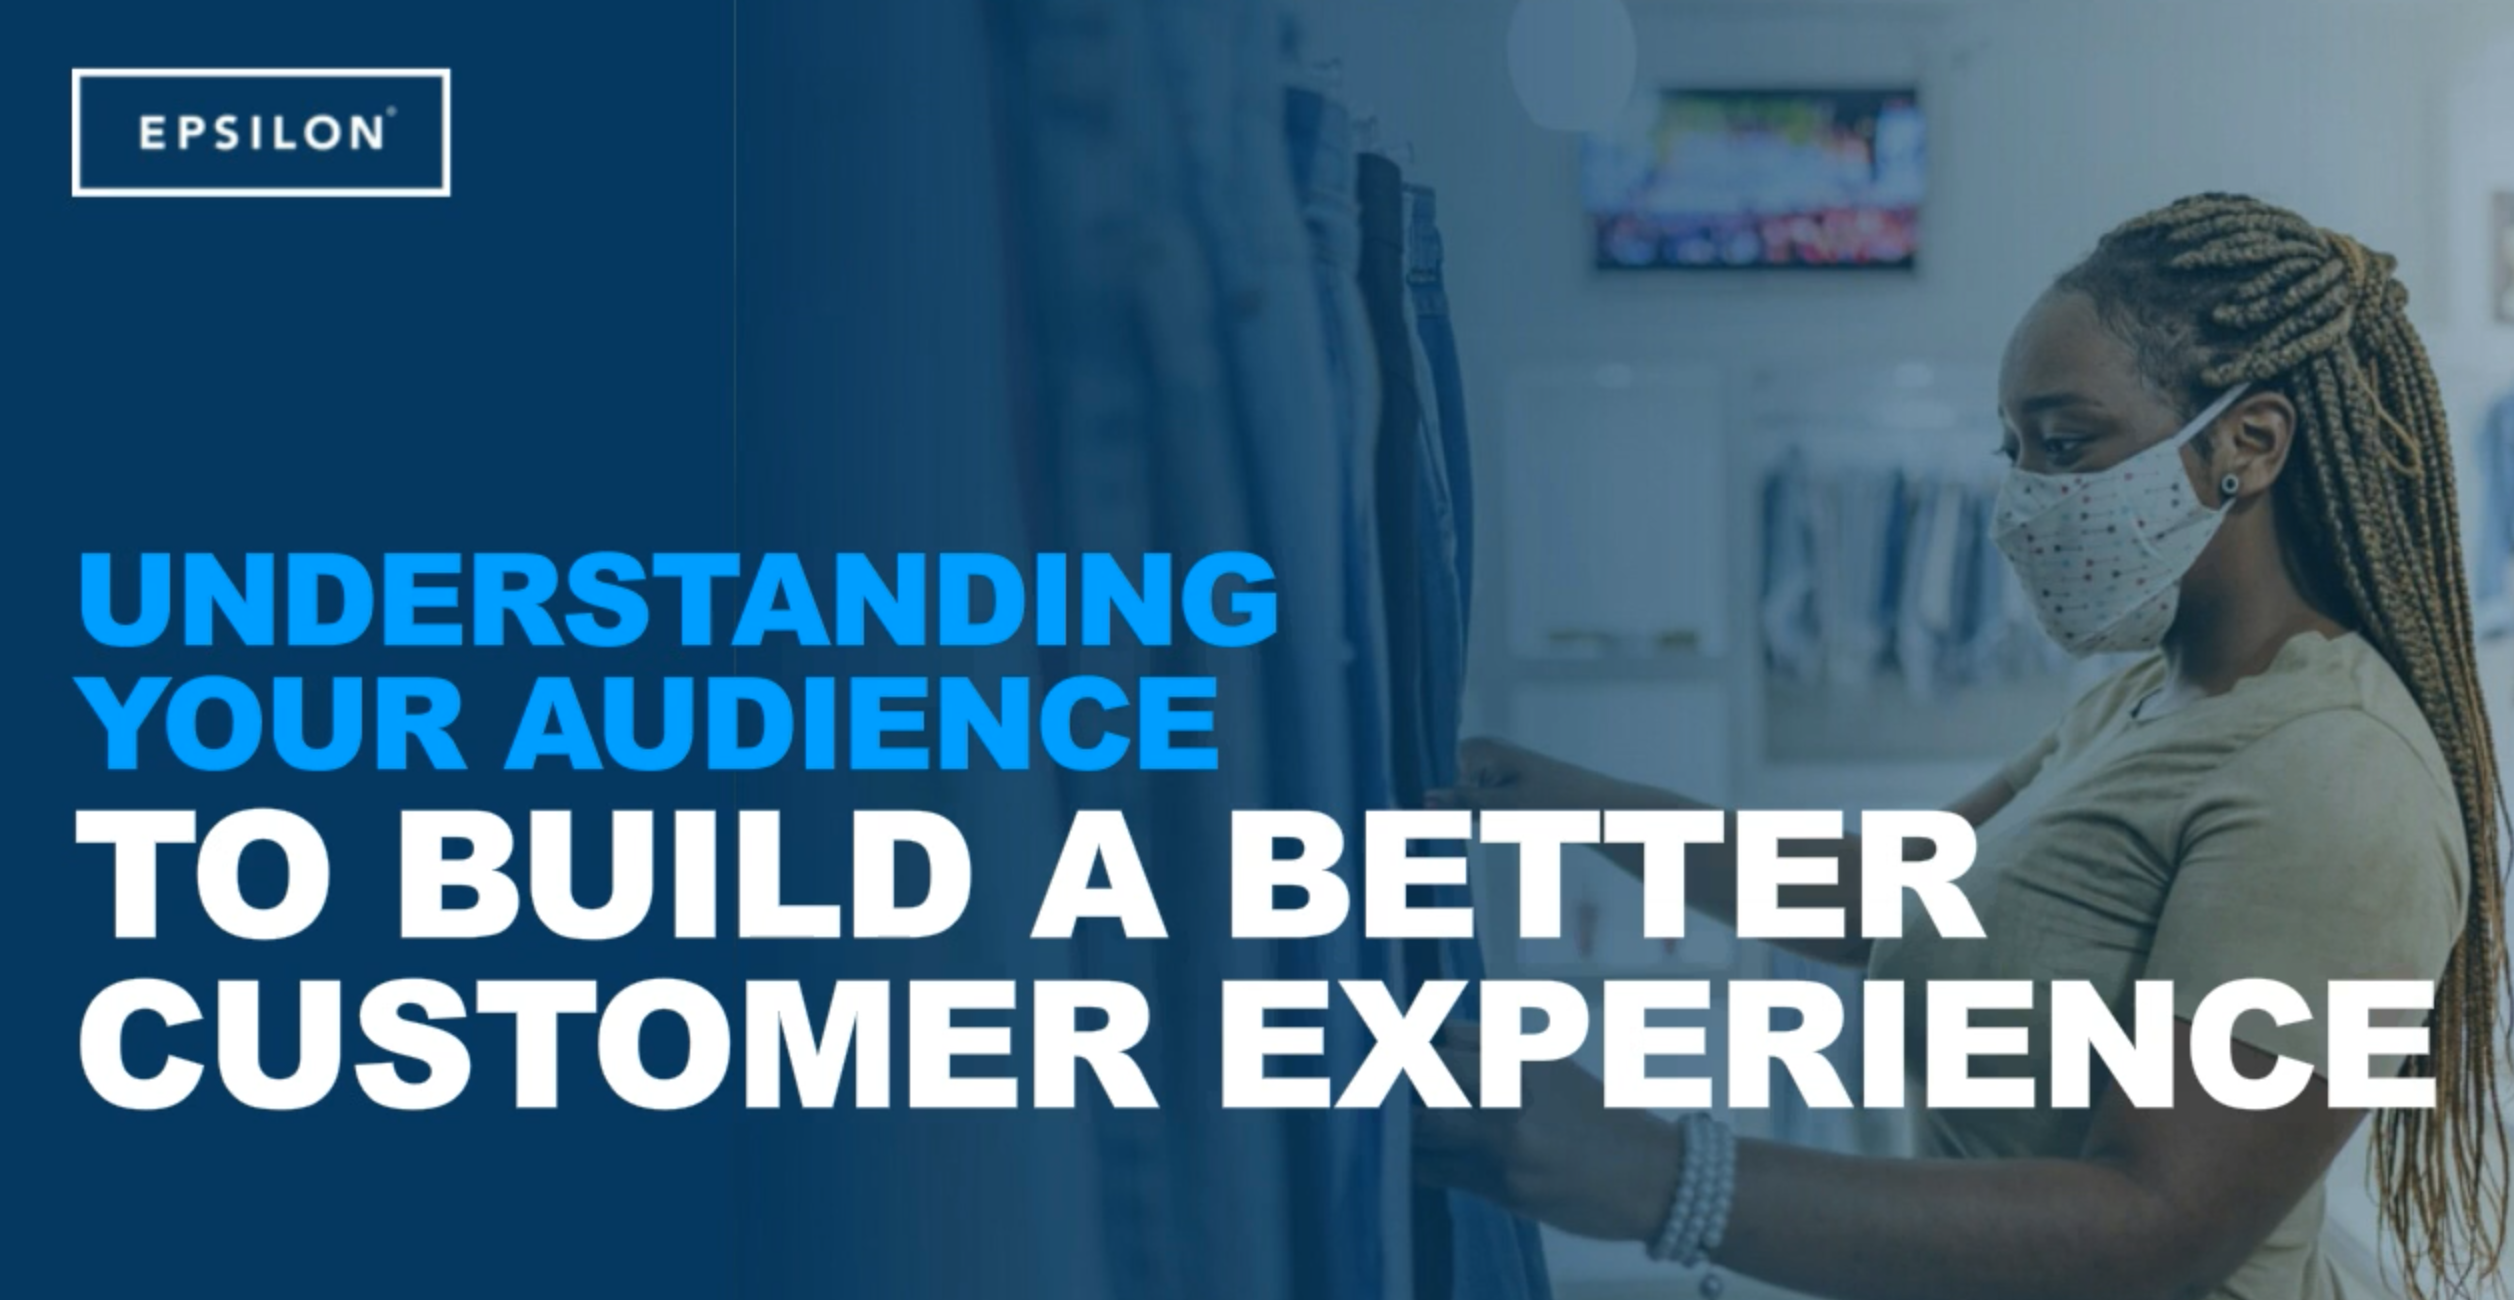 56% of Retailers Can't Reach the Right Customers. Can HomeGoods?